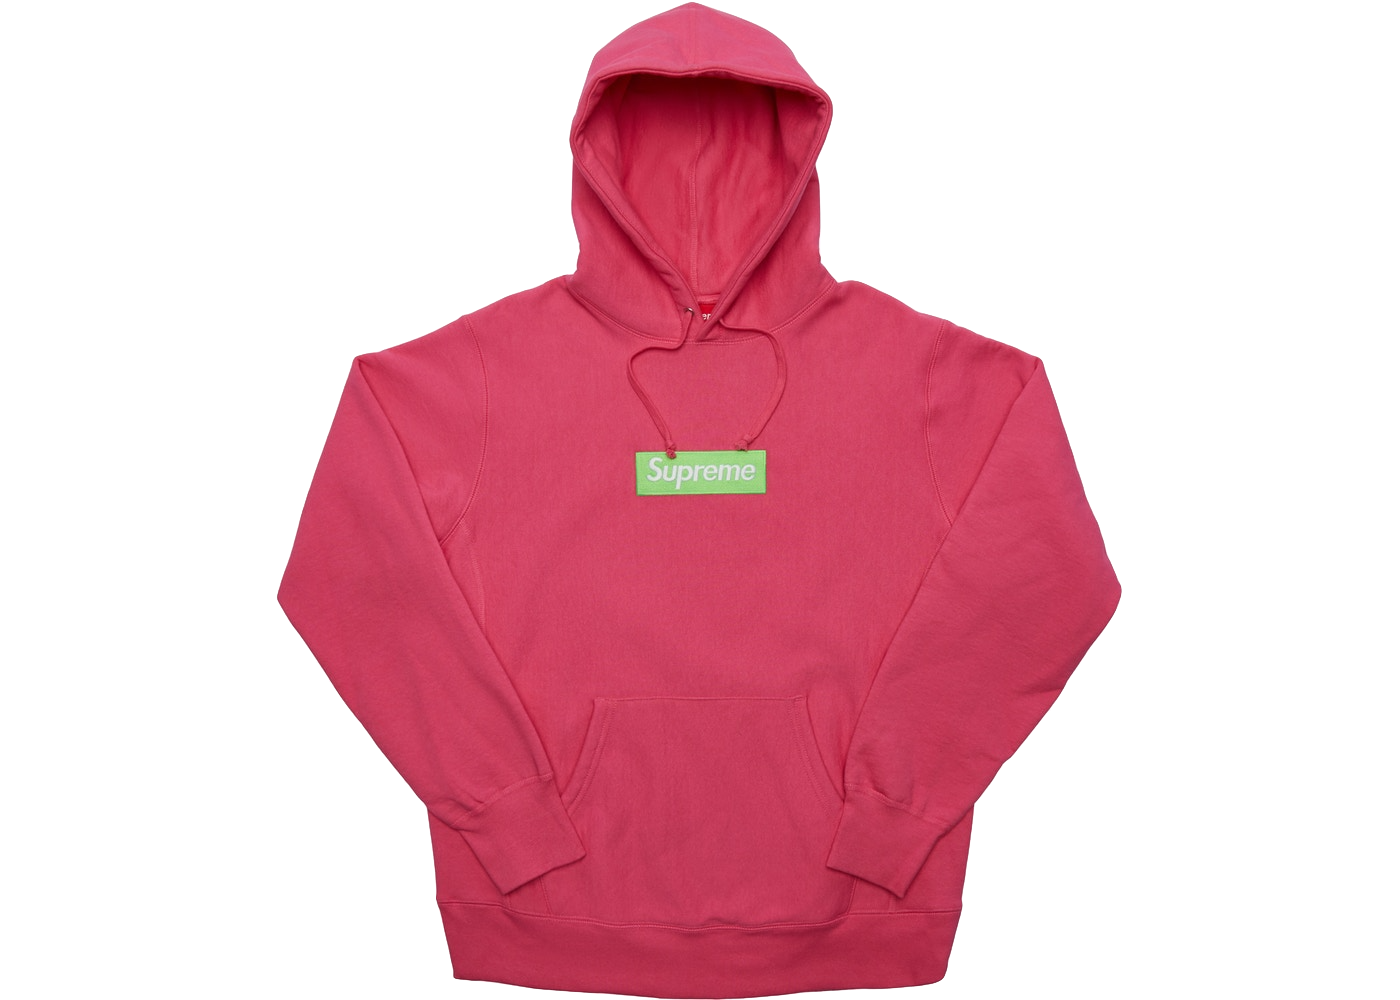 Supreme Box Logo Hooded Sweatshirt (FW17) Magenta - Baza